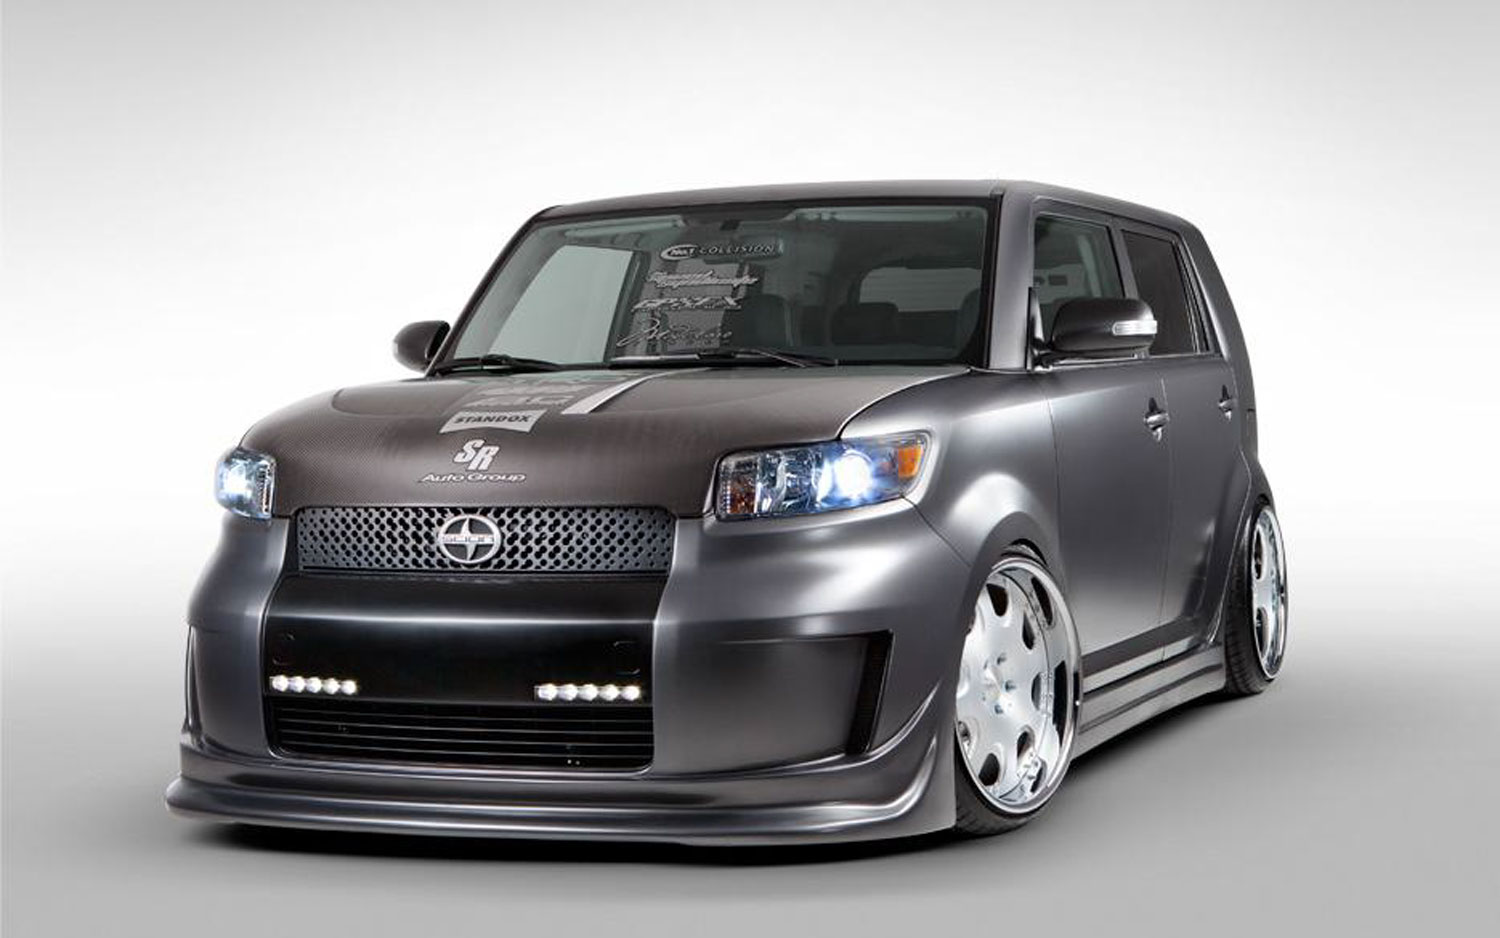 2011 Scion Xb #6